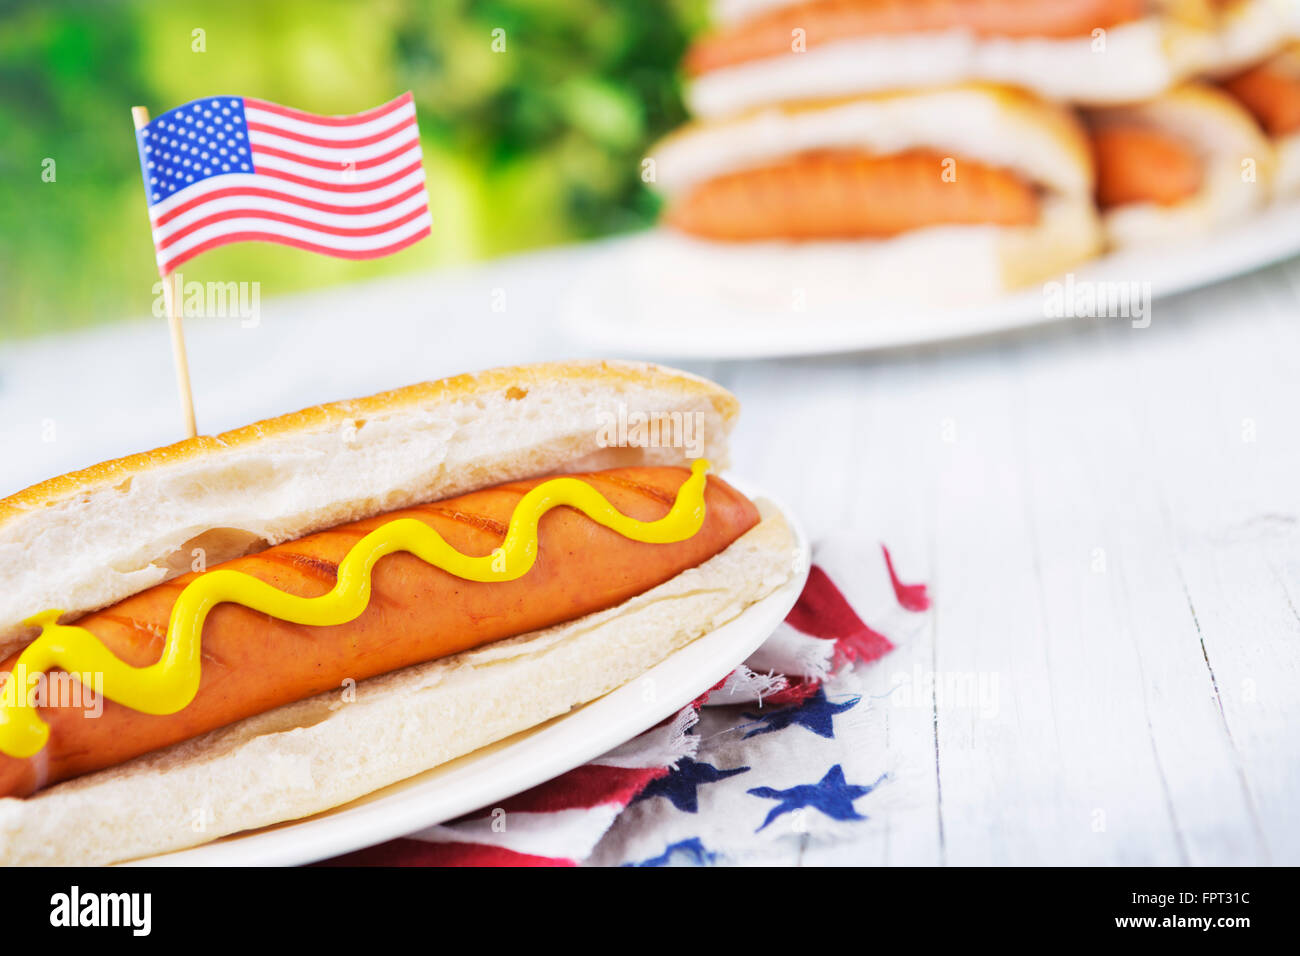 A tasty hot dog with mustard on an outdoor table. - Stock Image